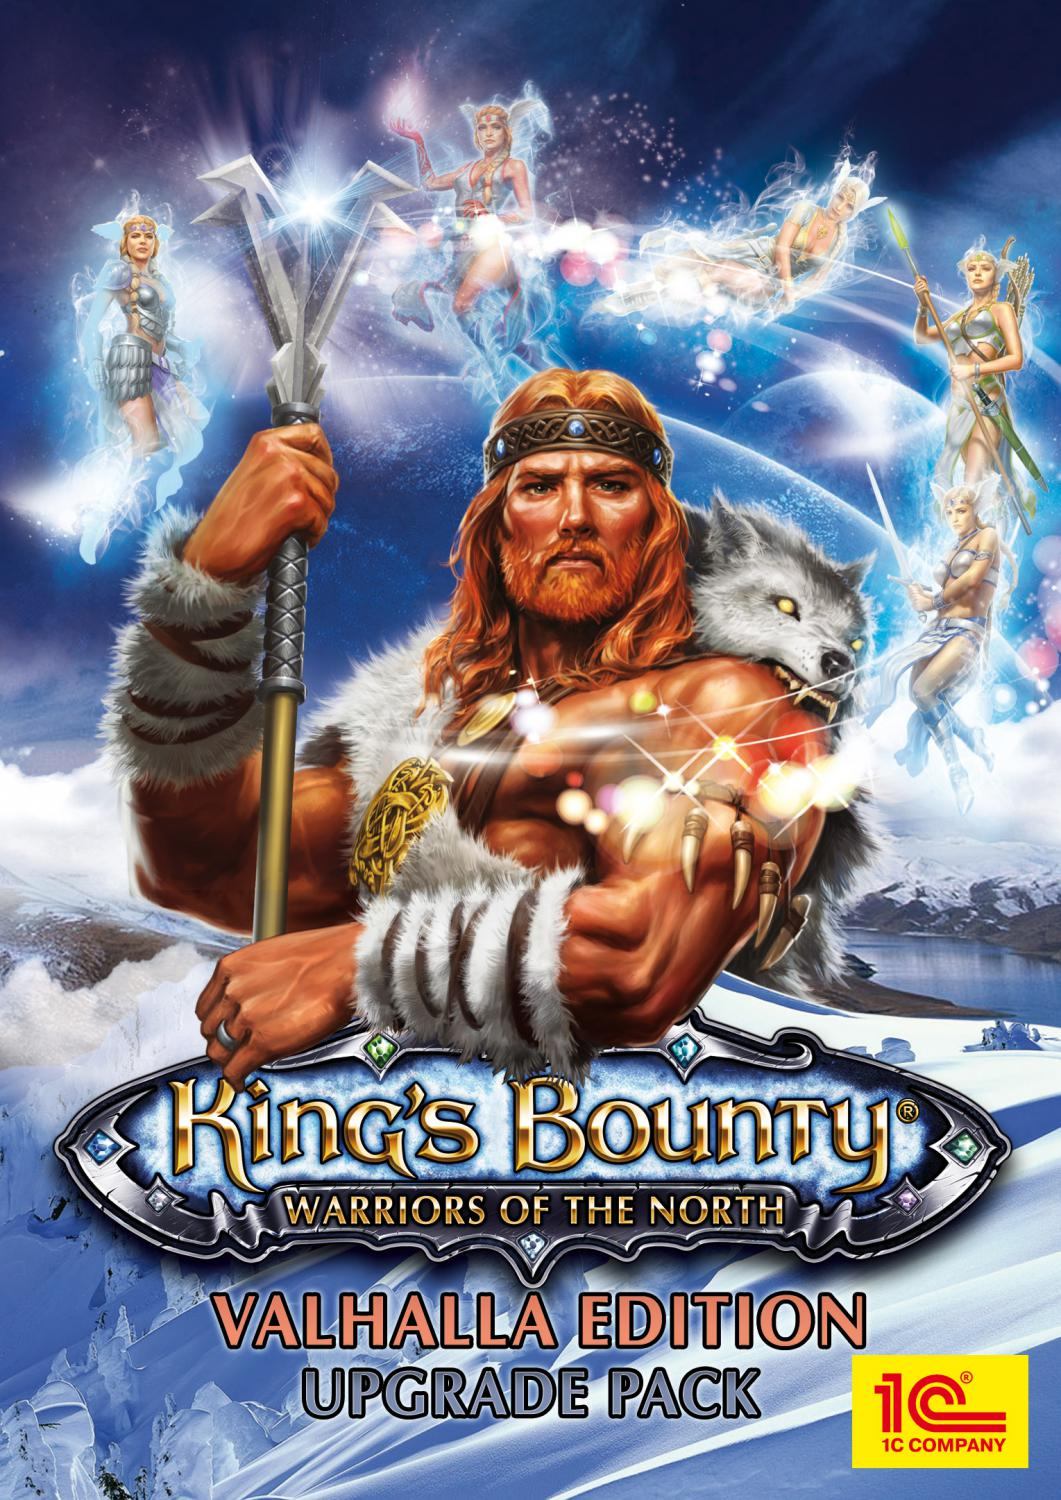 Kings Bounty: Warriors of the North Valhalla upgrade